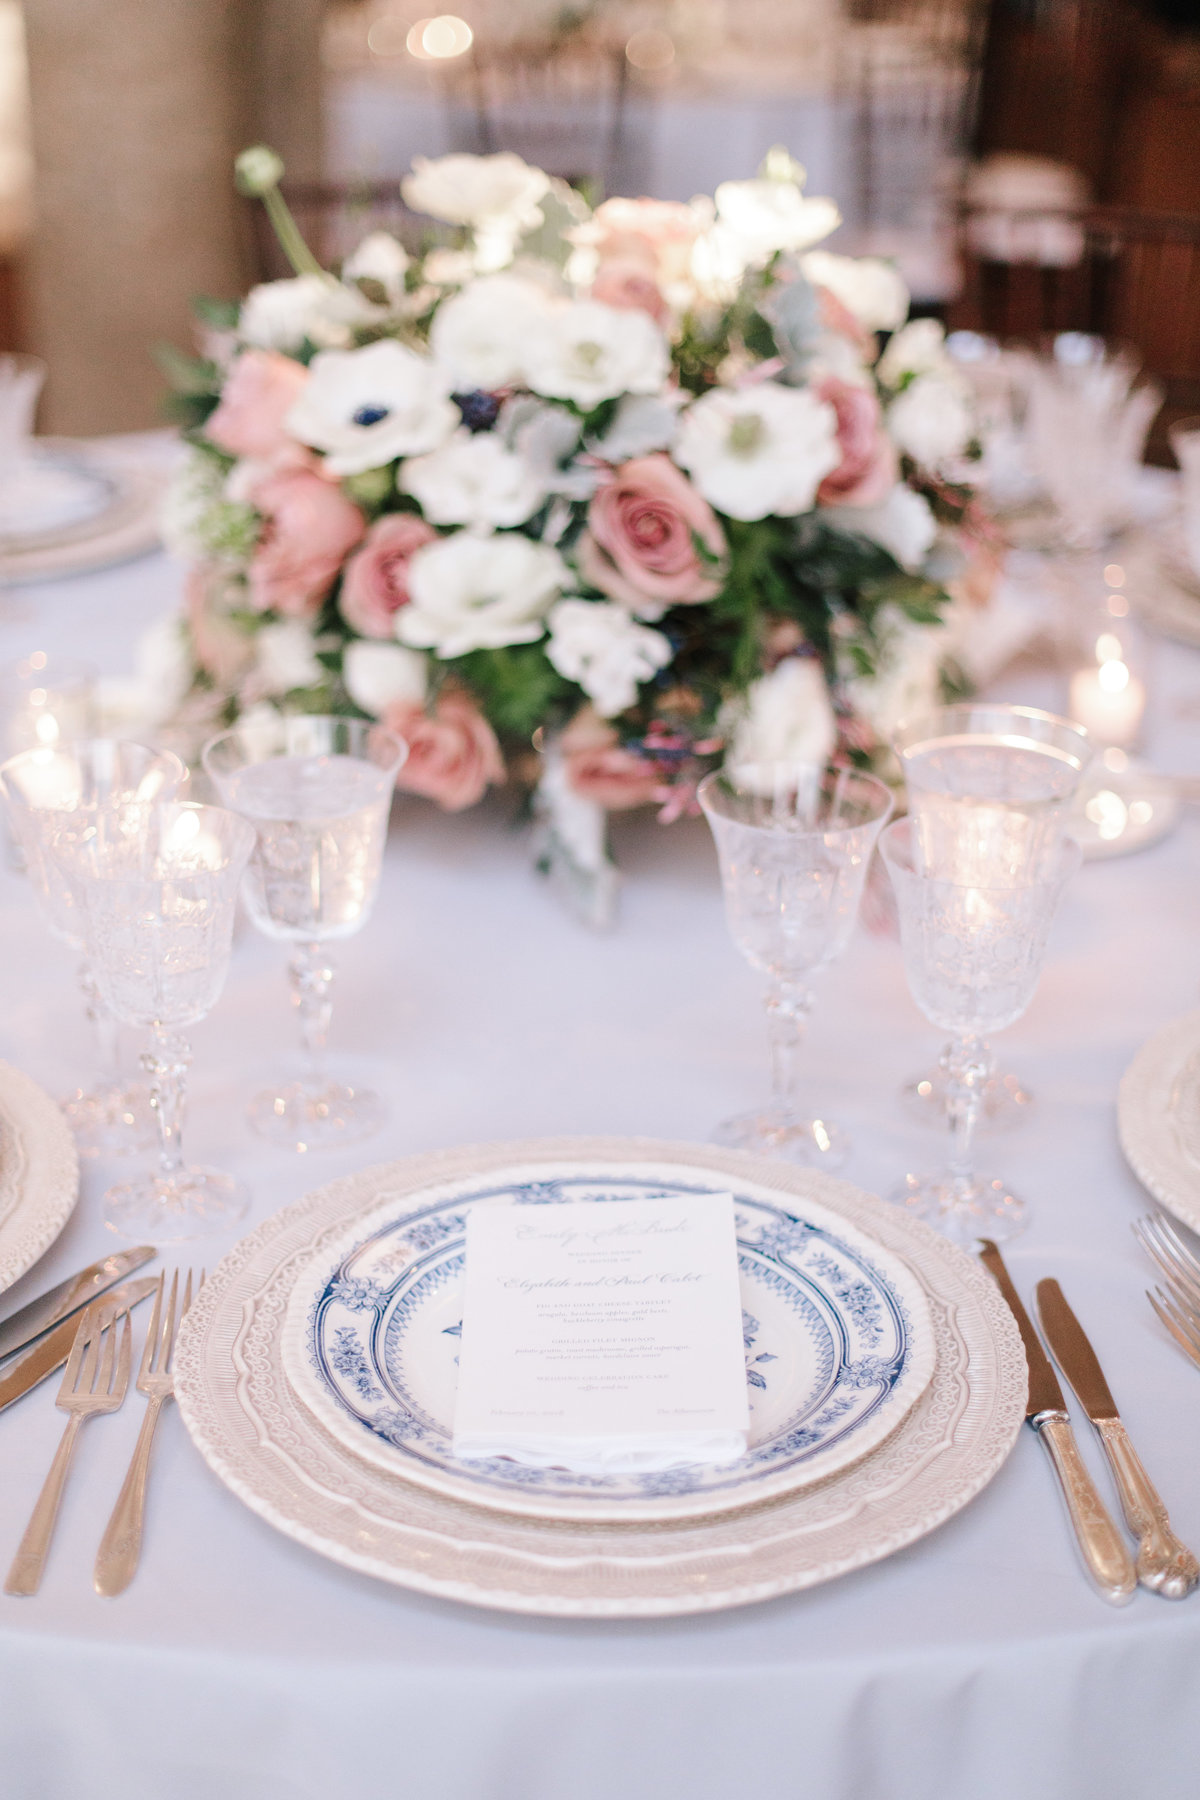 Tablescape for wedding by Jenny Schneider Events at The Anthenaeum in Pasadena, California. Photo by Heather Kincaid Photography.